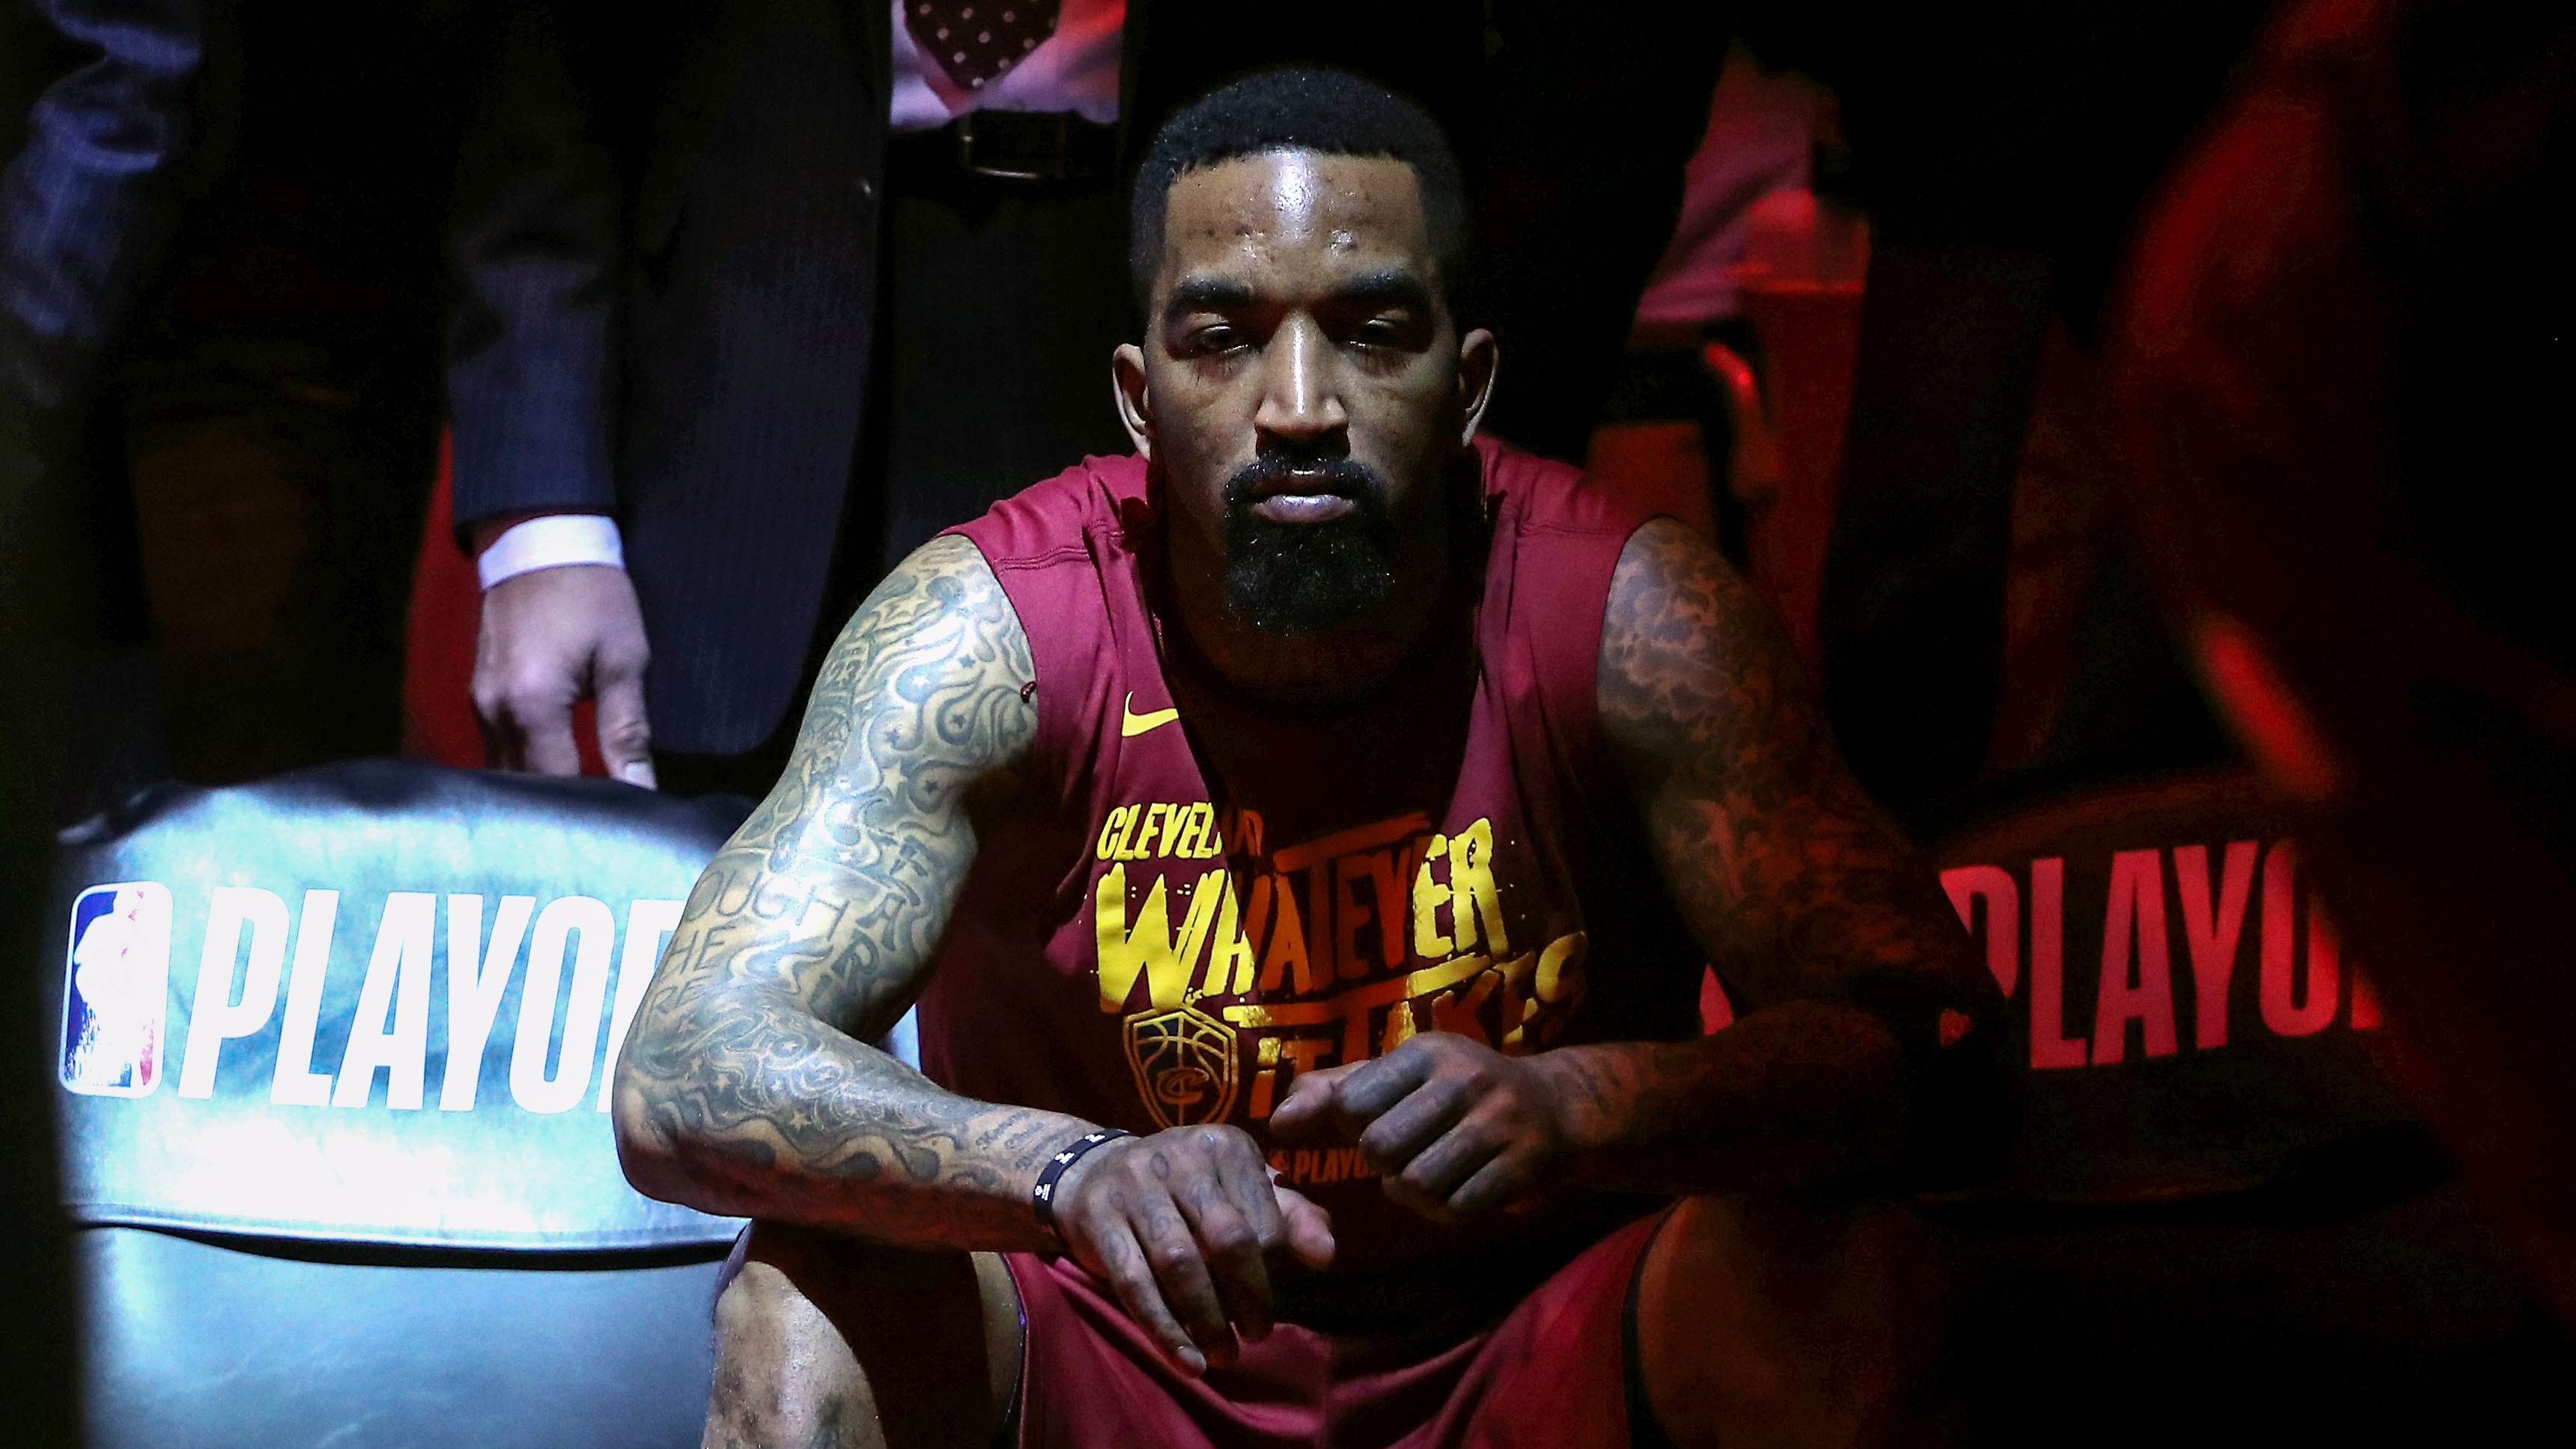 bf9254dfbc13 J.R. Smith waits on the bench before the start of the Cavs  game against  the Toronto Raptors in the second round of the 2018 NBA playoffs at Air  Canada ...